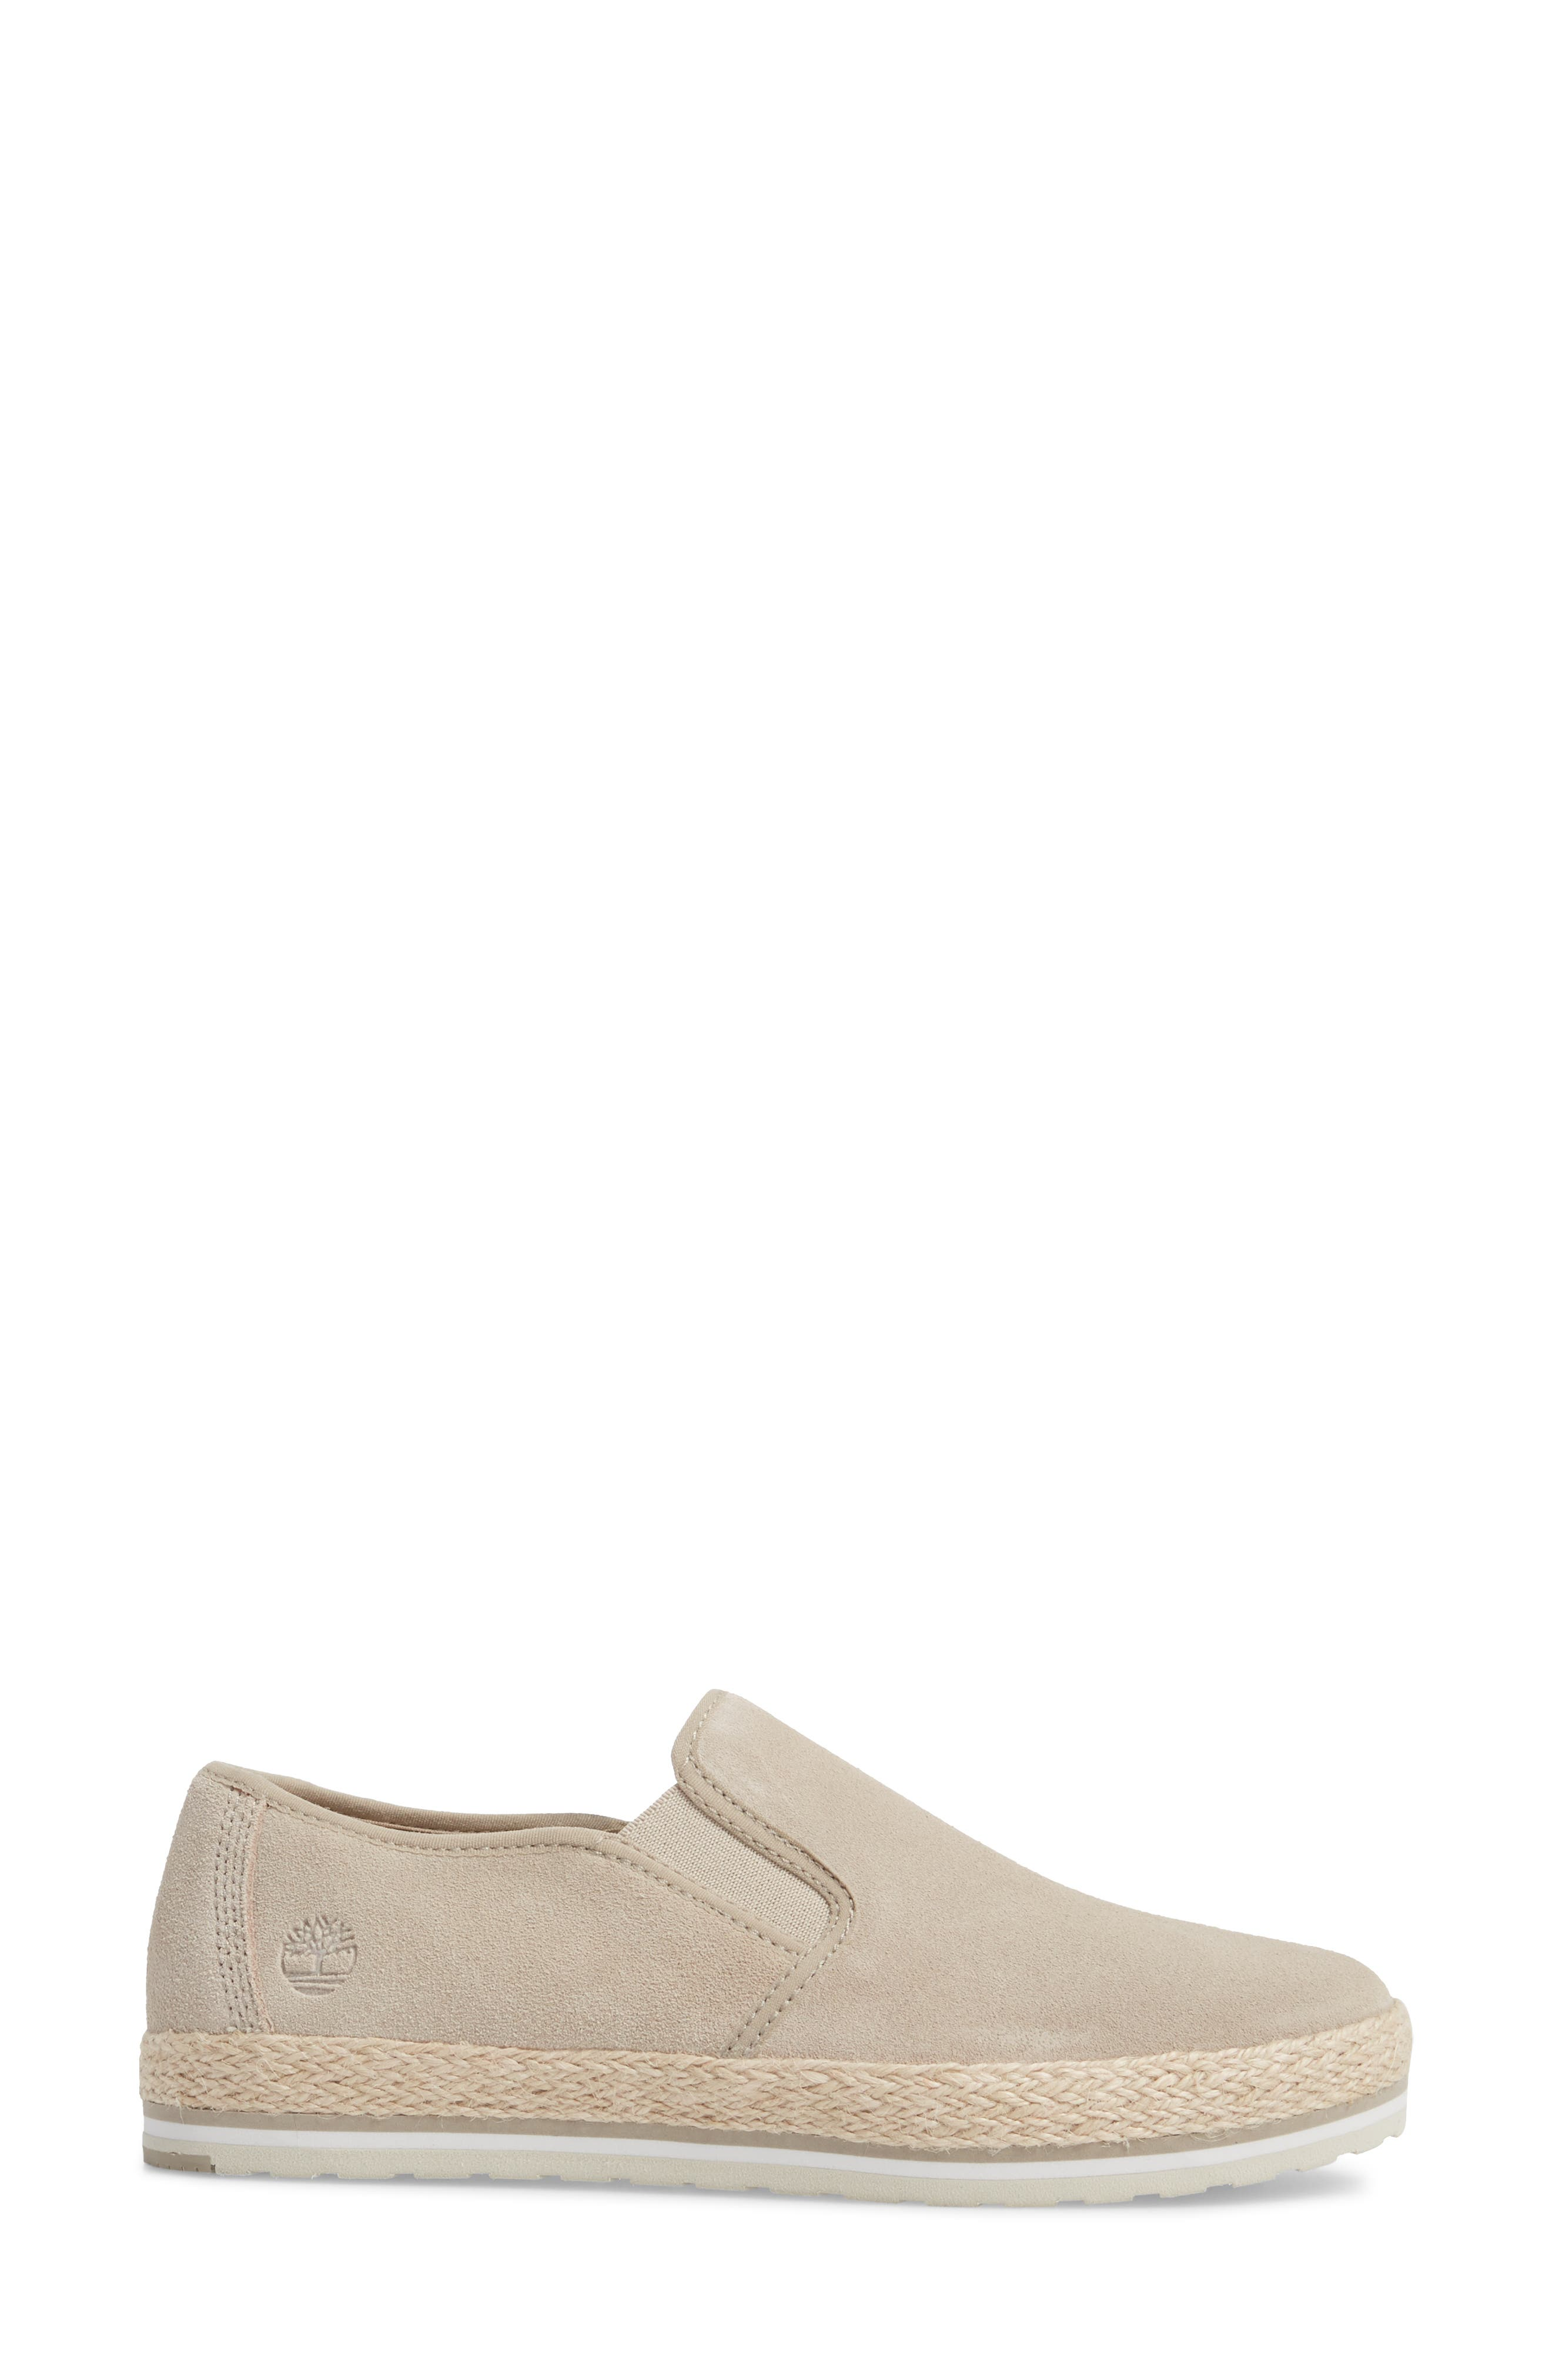 Eivissa Sea Slip-On Sneaker,                             Alternate thumbnail 3, color,                             LIGHT BEIGE LEATHER